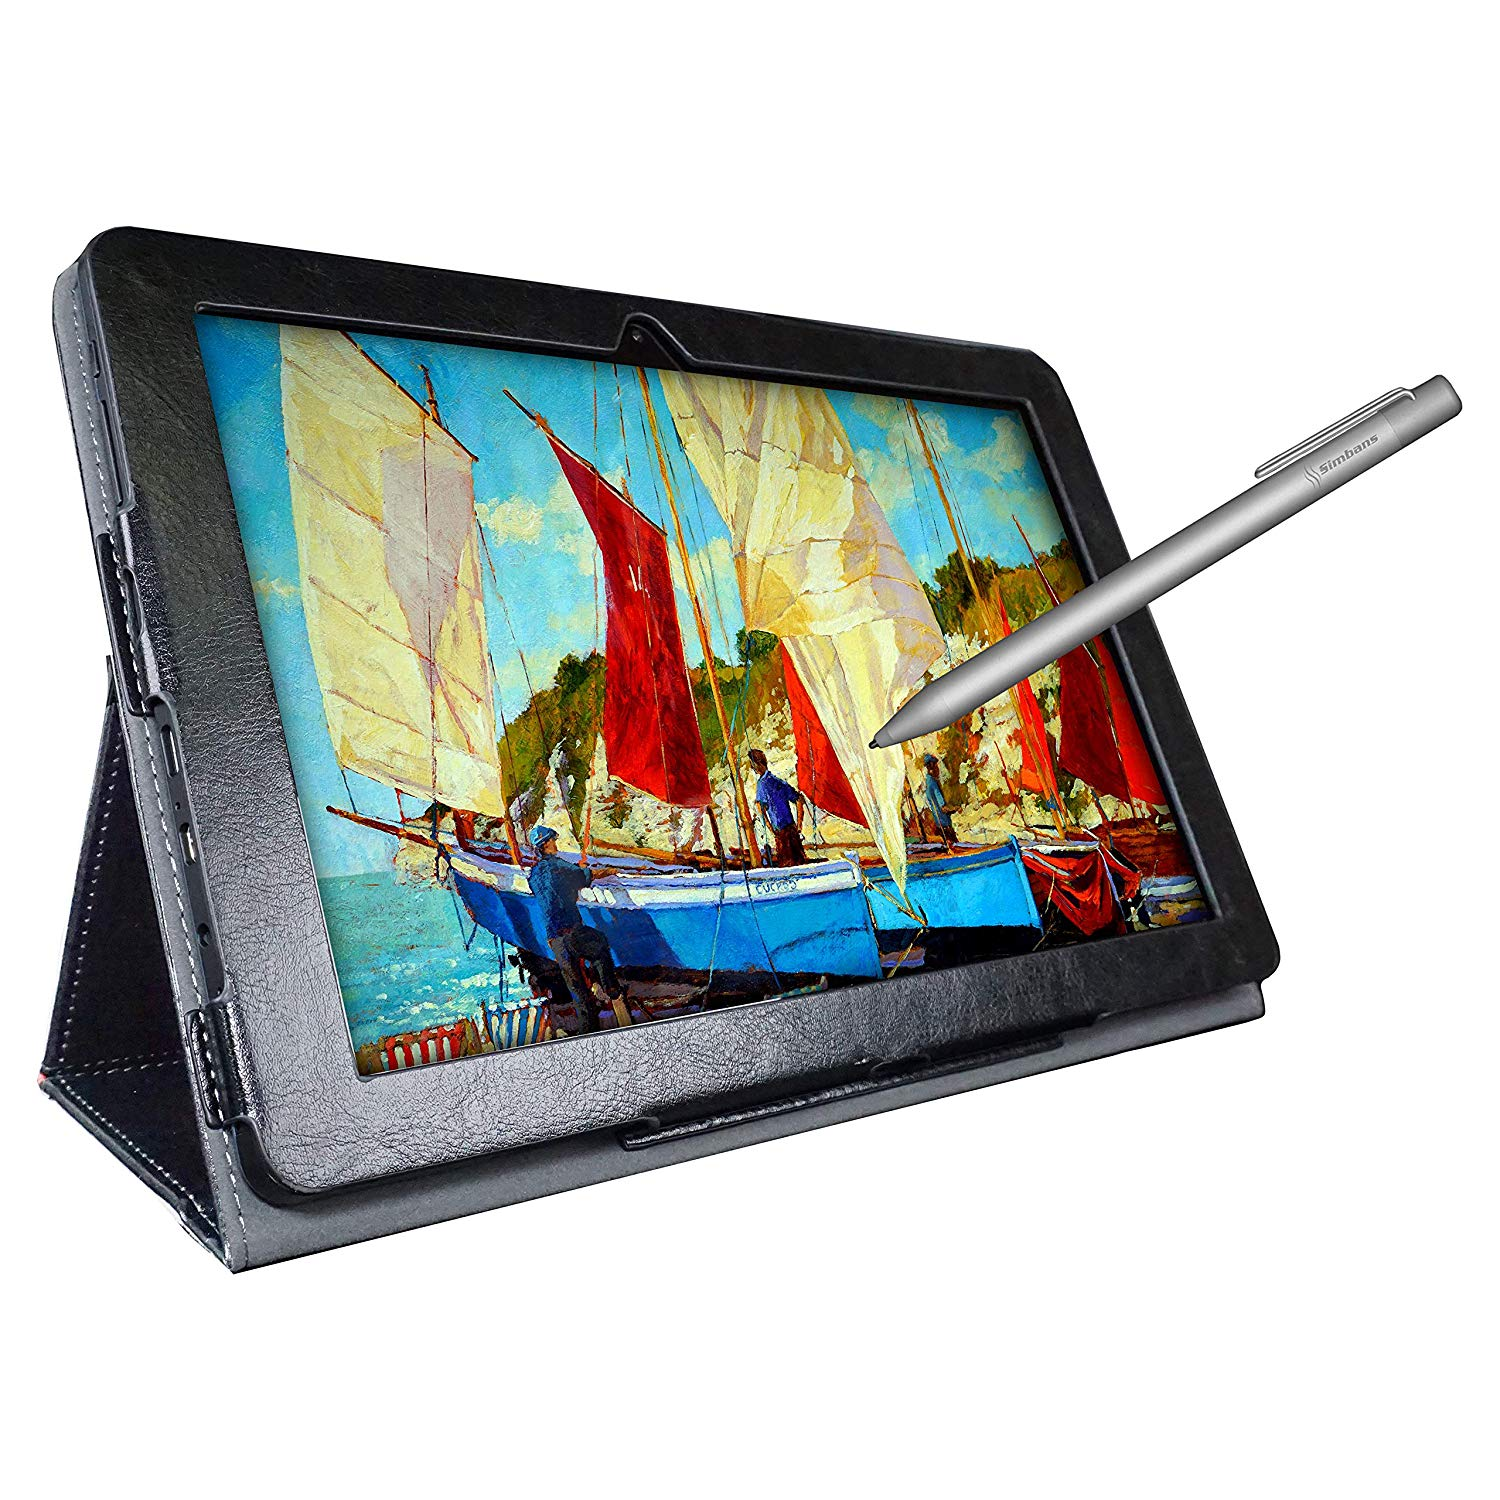 Simbans PicassoTab 10-inch Tablet